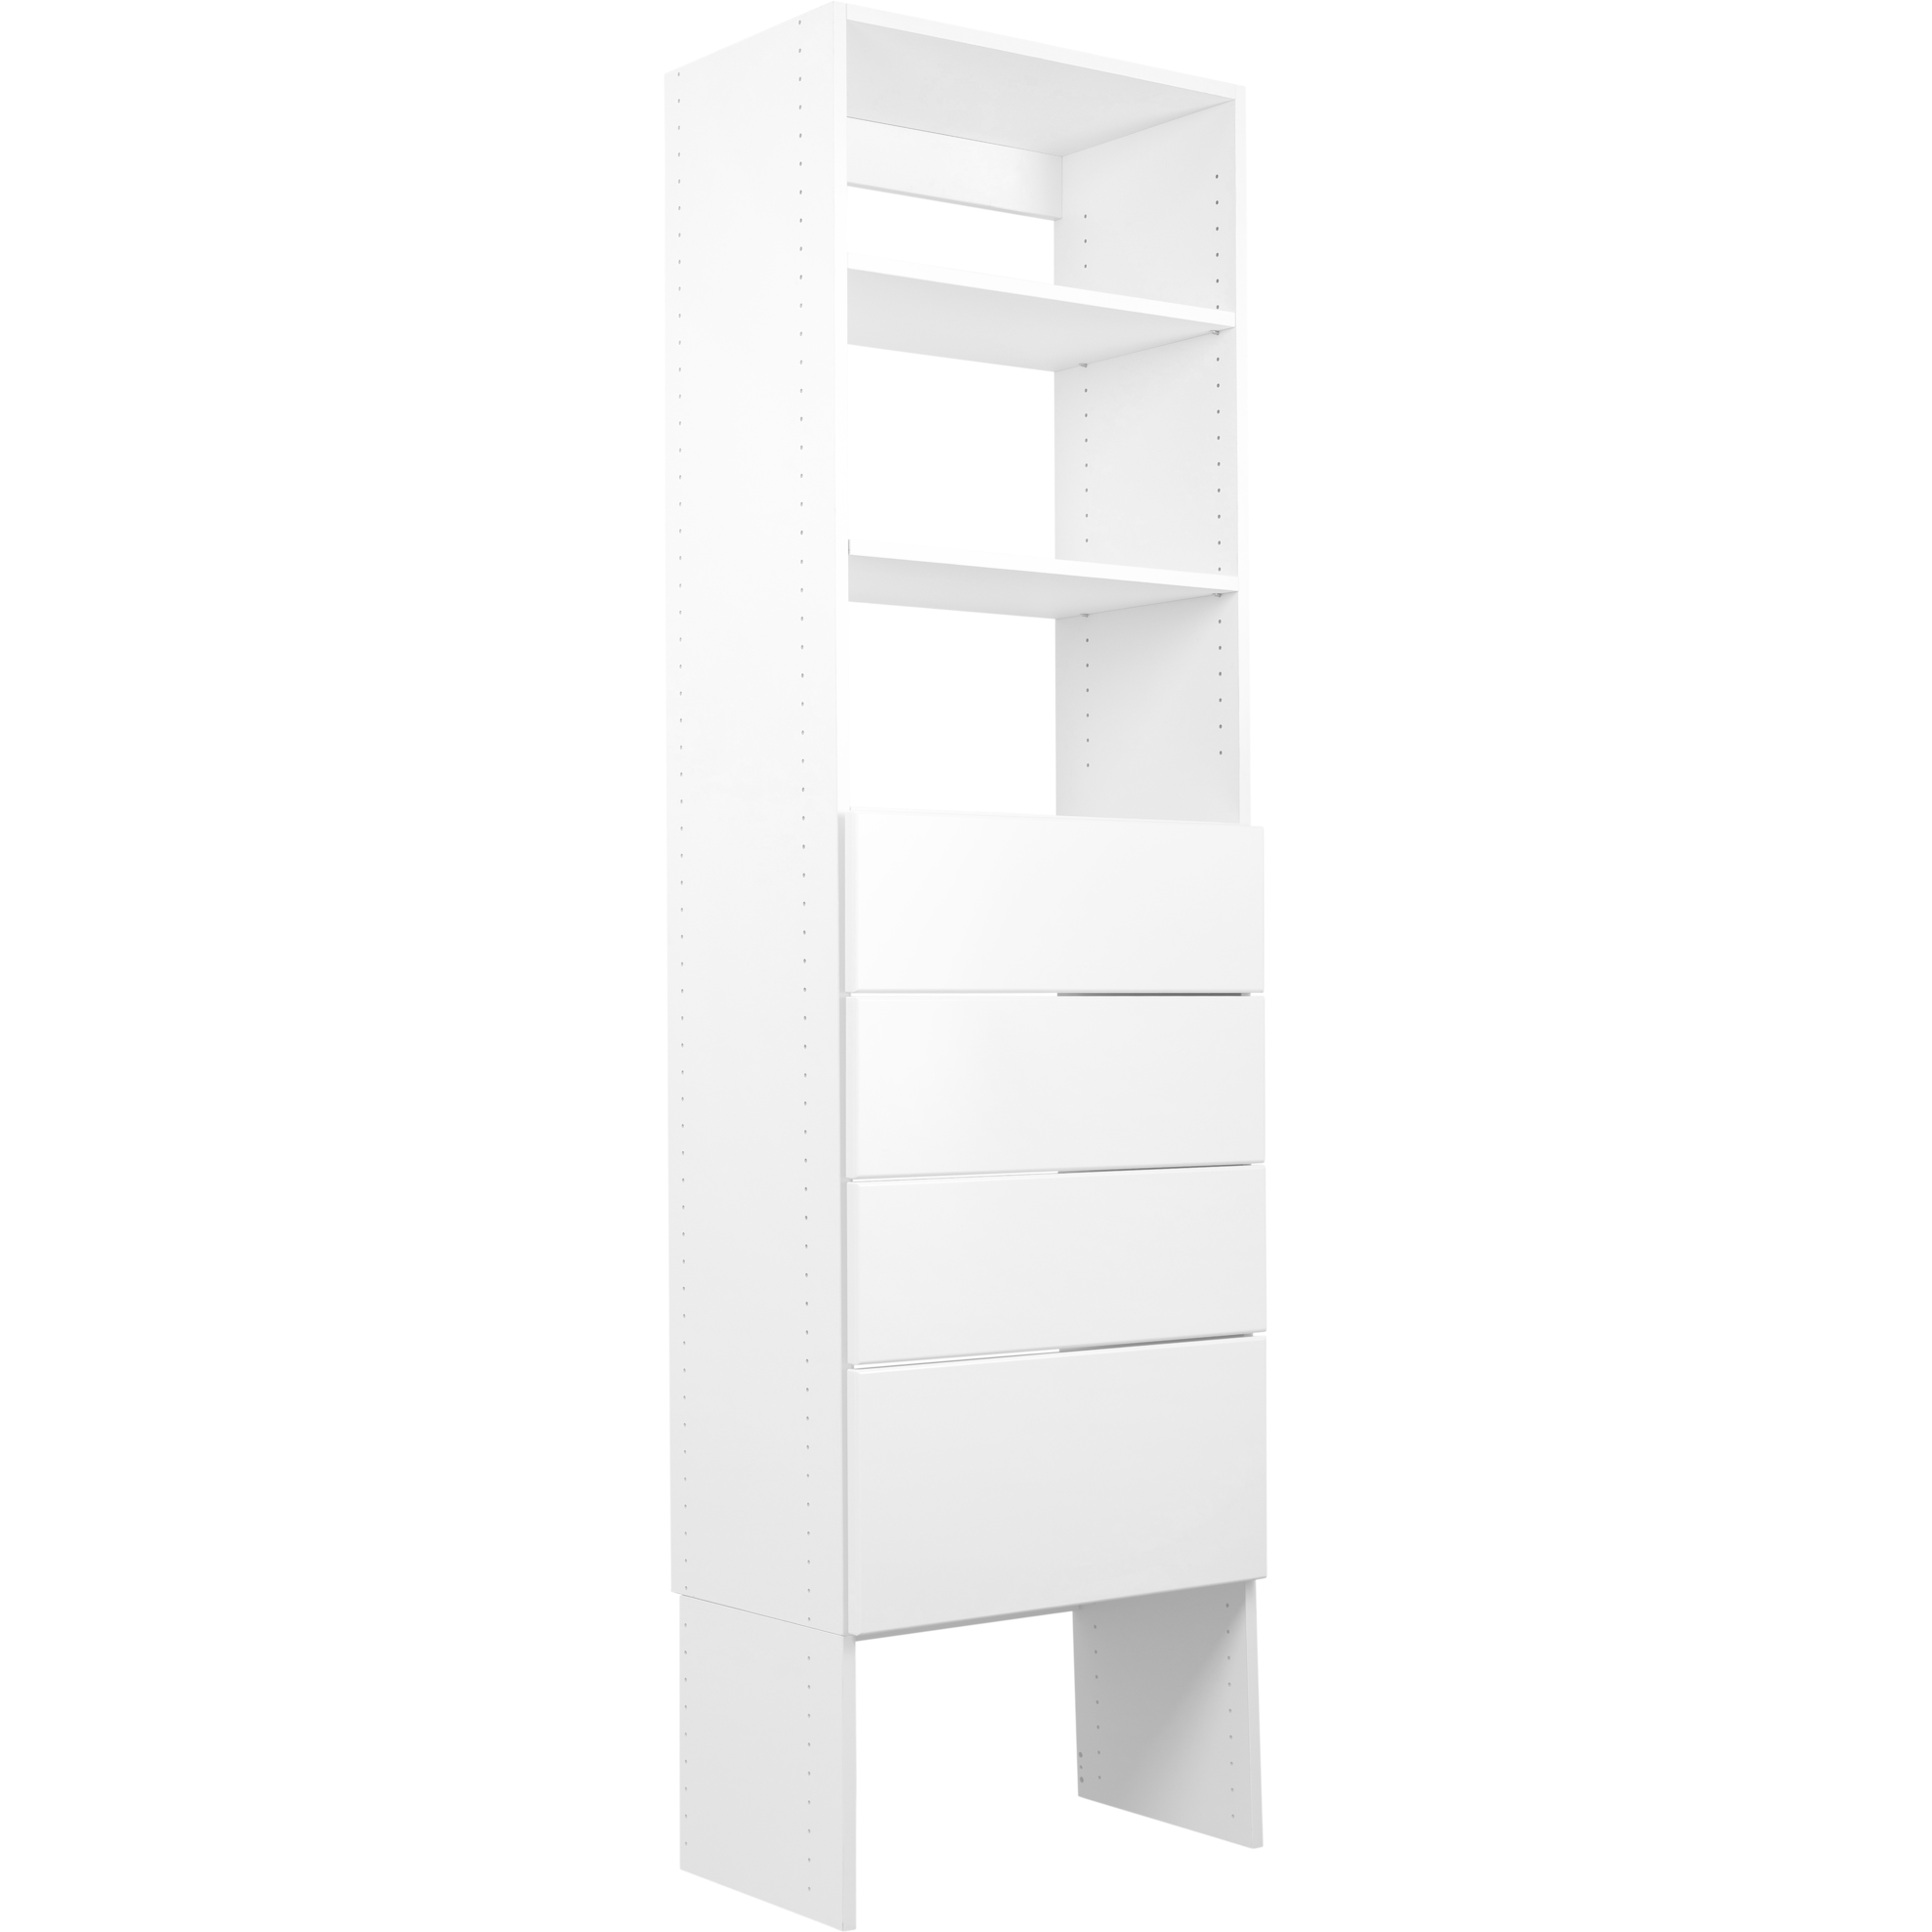 drawer drawers pioneerproduceofnorthpole modular tower closets with assembly closet com reviews installation